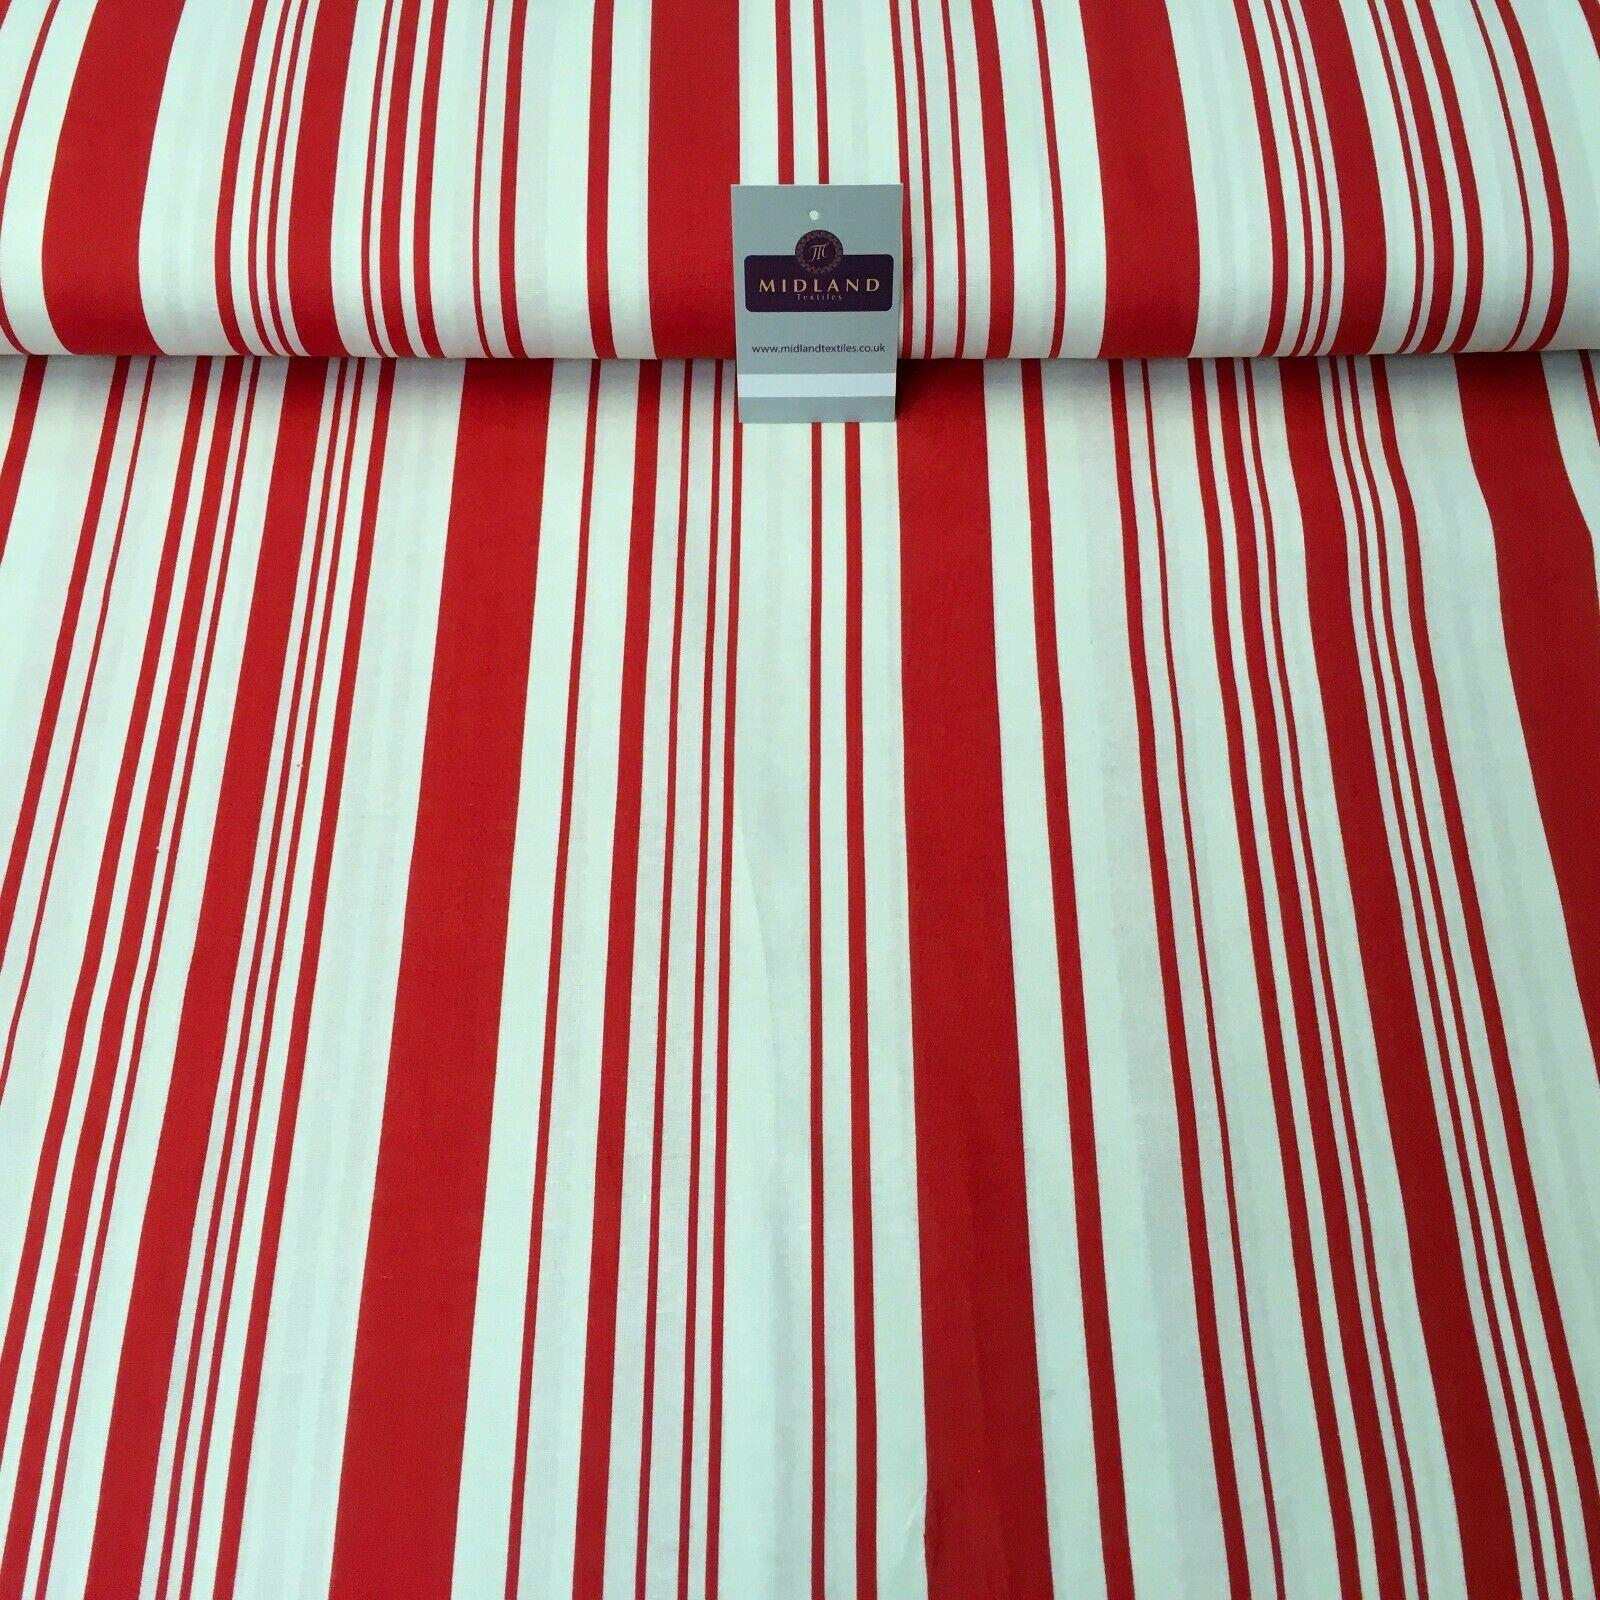 Red Striped Printed Cotton Linen Dress Fabric 150cm Wide MK1086-5